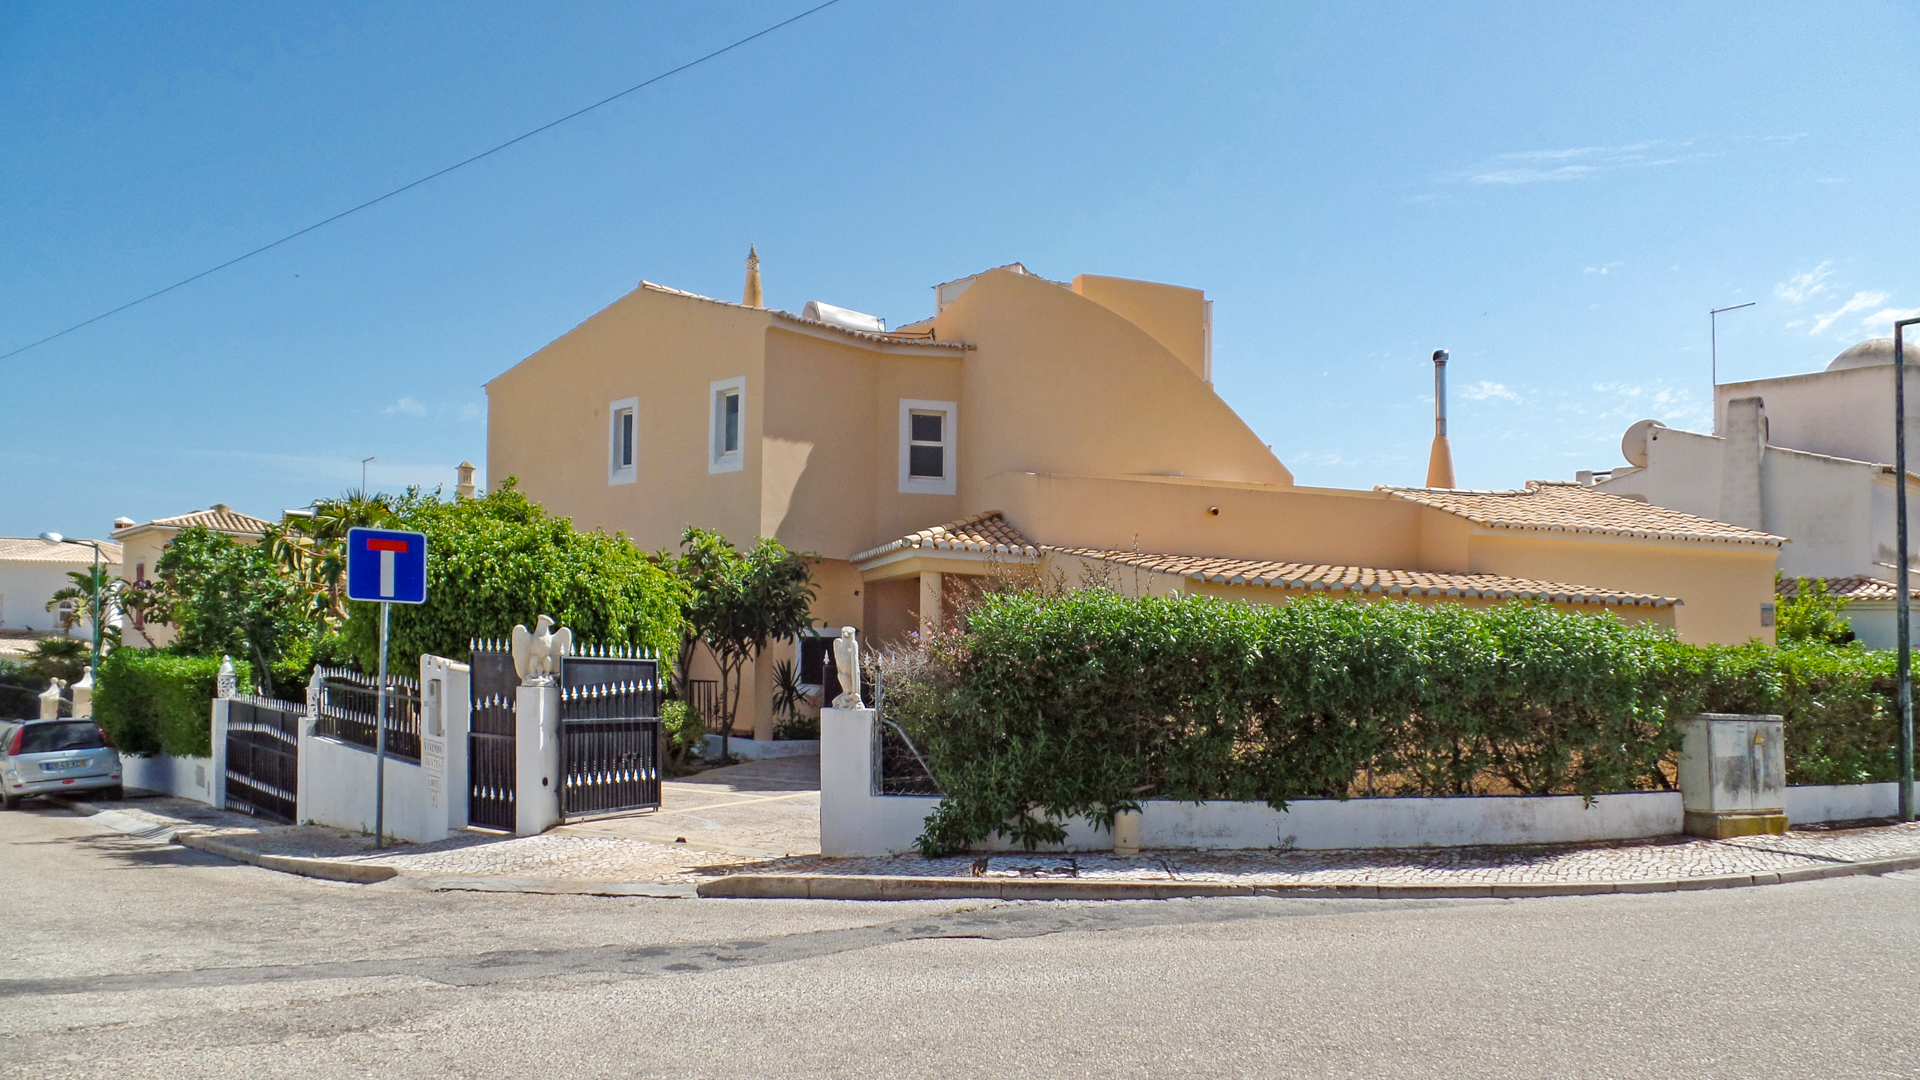 4 bedroom villa with private pool and sea views, Alvor, Portimão, West Algarve  | LG1130 Large, 4 bedroom villa with pool and sea views in a quiet urbanization, within 600m of the beach, between Alvor and Portimão. Next to Praia do Vau and Alto Golf, the property is well maintained and boasts many traditional Portuguese features. Ideal for permanent living or holidays in the Algarve!